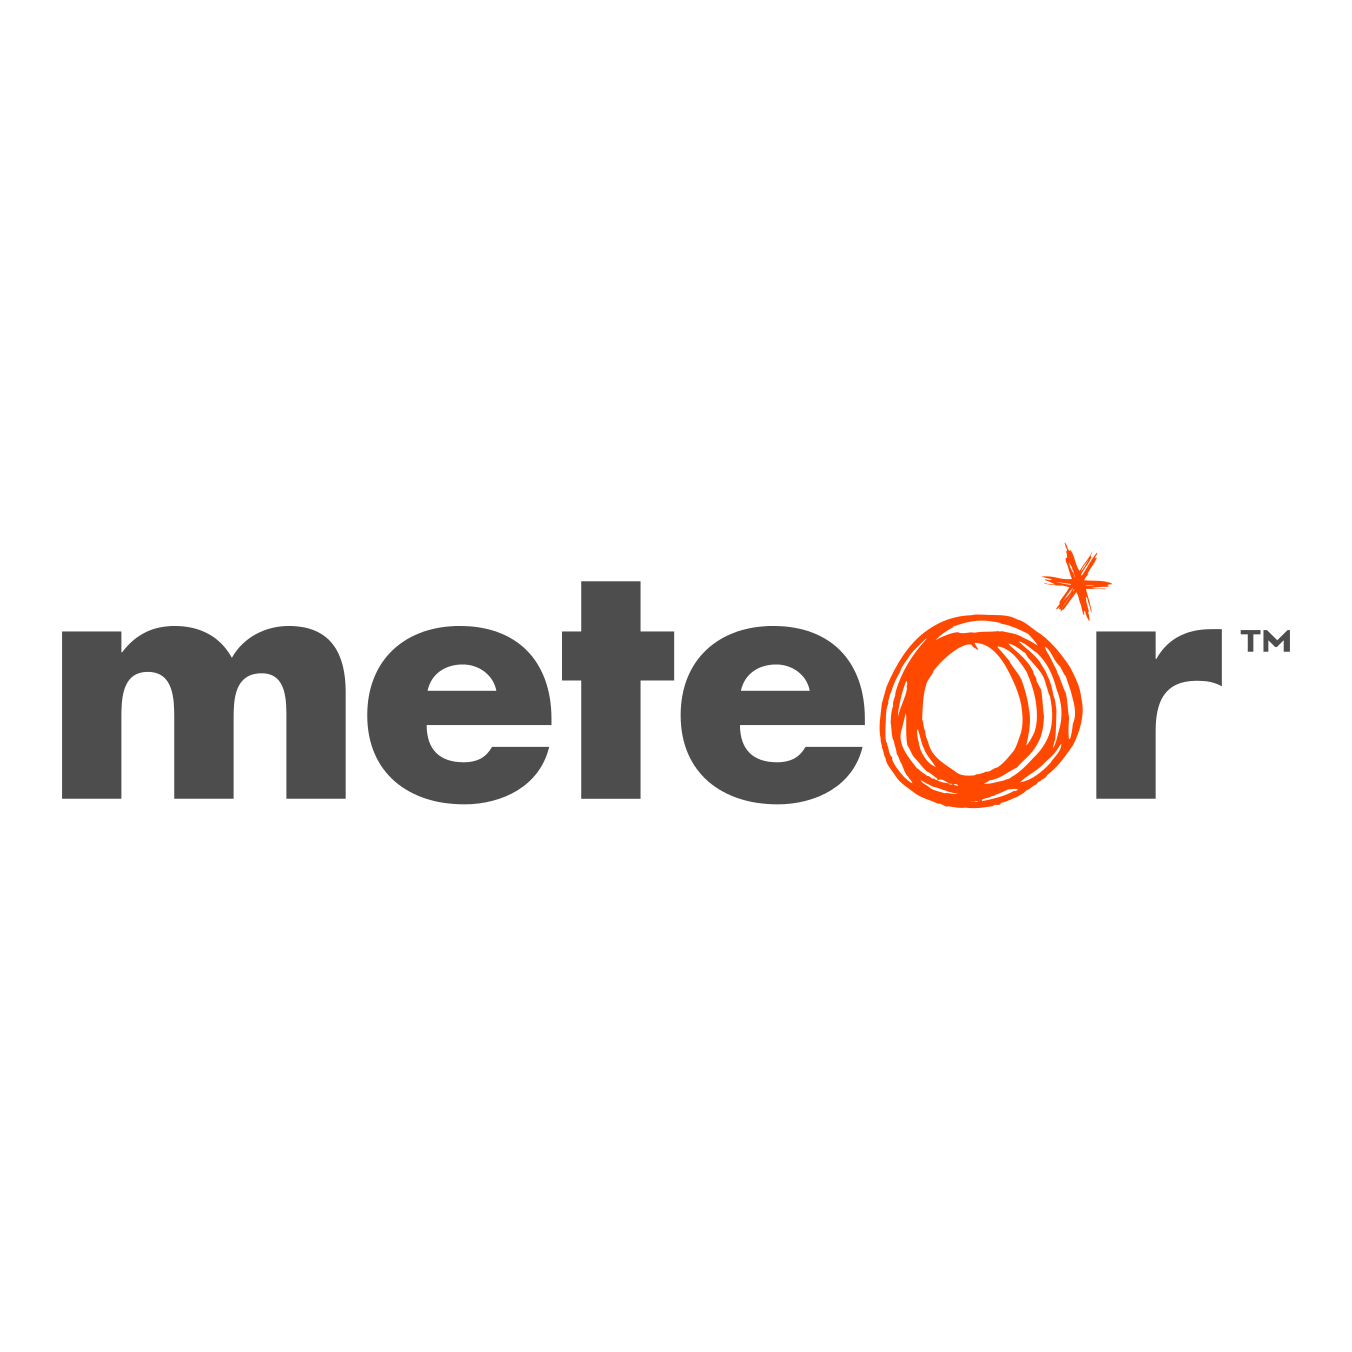 Meteor Ireland iPhone 3GS,3GS,4,4S,5,iPad,5S,5C,6,6S,SE,7 Unlock